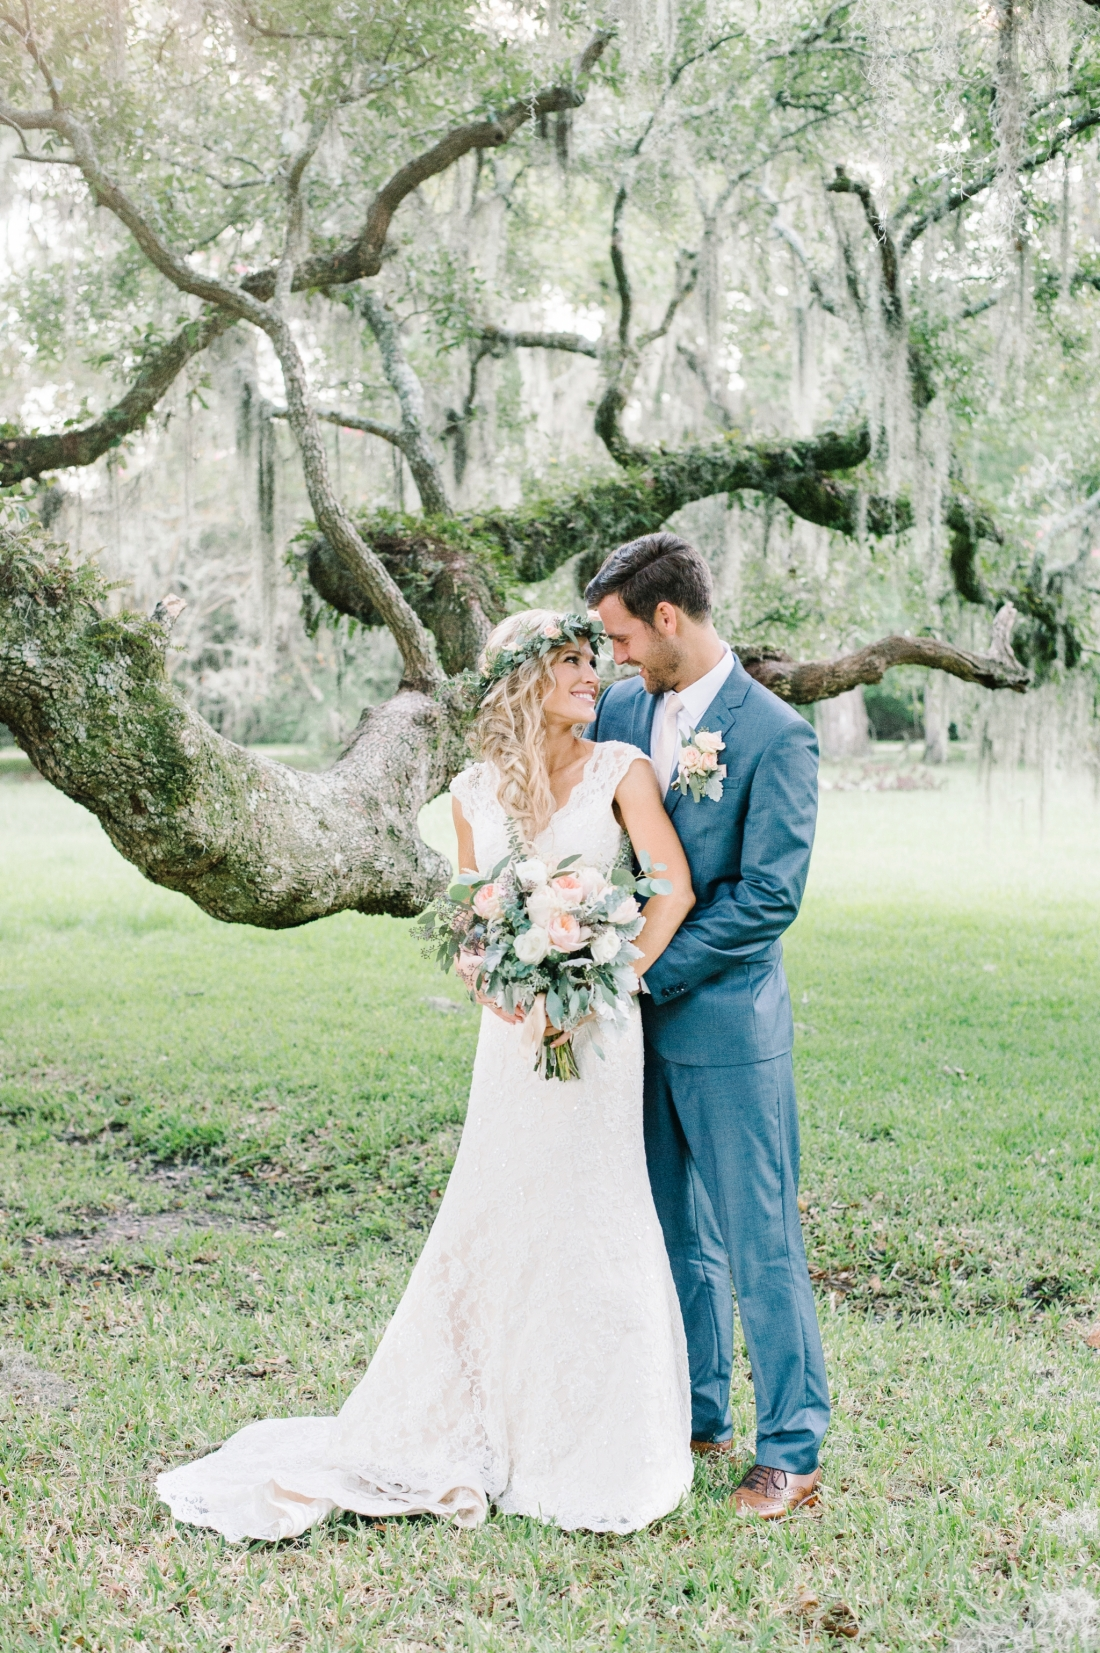 jermiah-and-shelbys-magnolia-plantation-wedding-in-charleston-by-charleston-wedding-photographers-aaron-and-jillian-photography-_0019